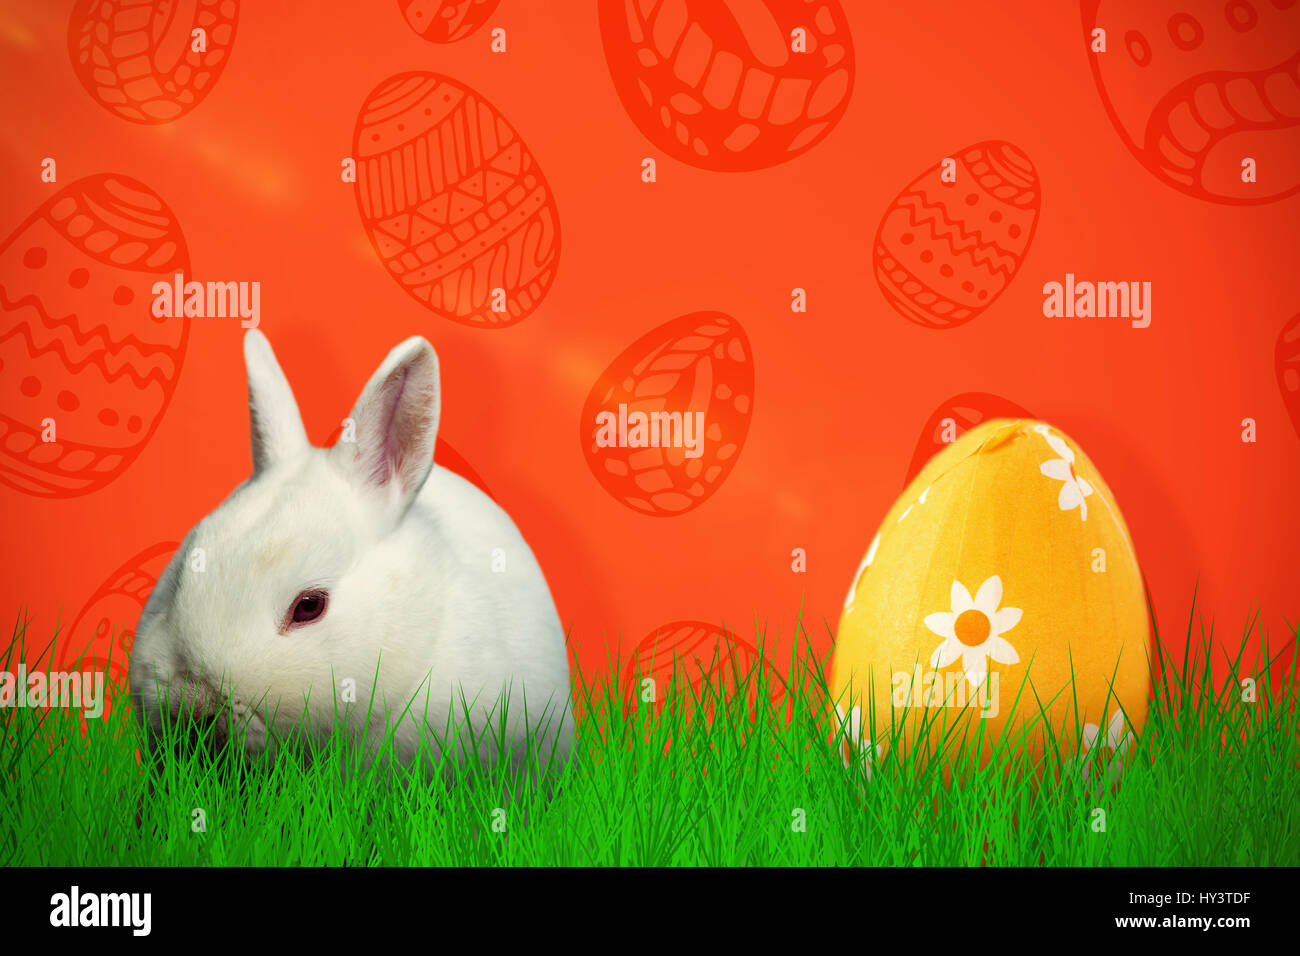 Rabbit against white background against red background - Stock Image